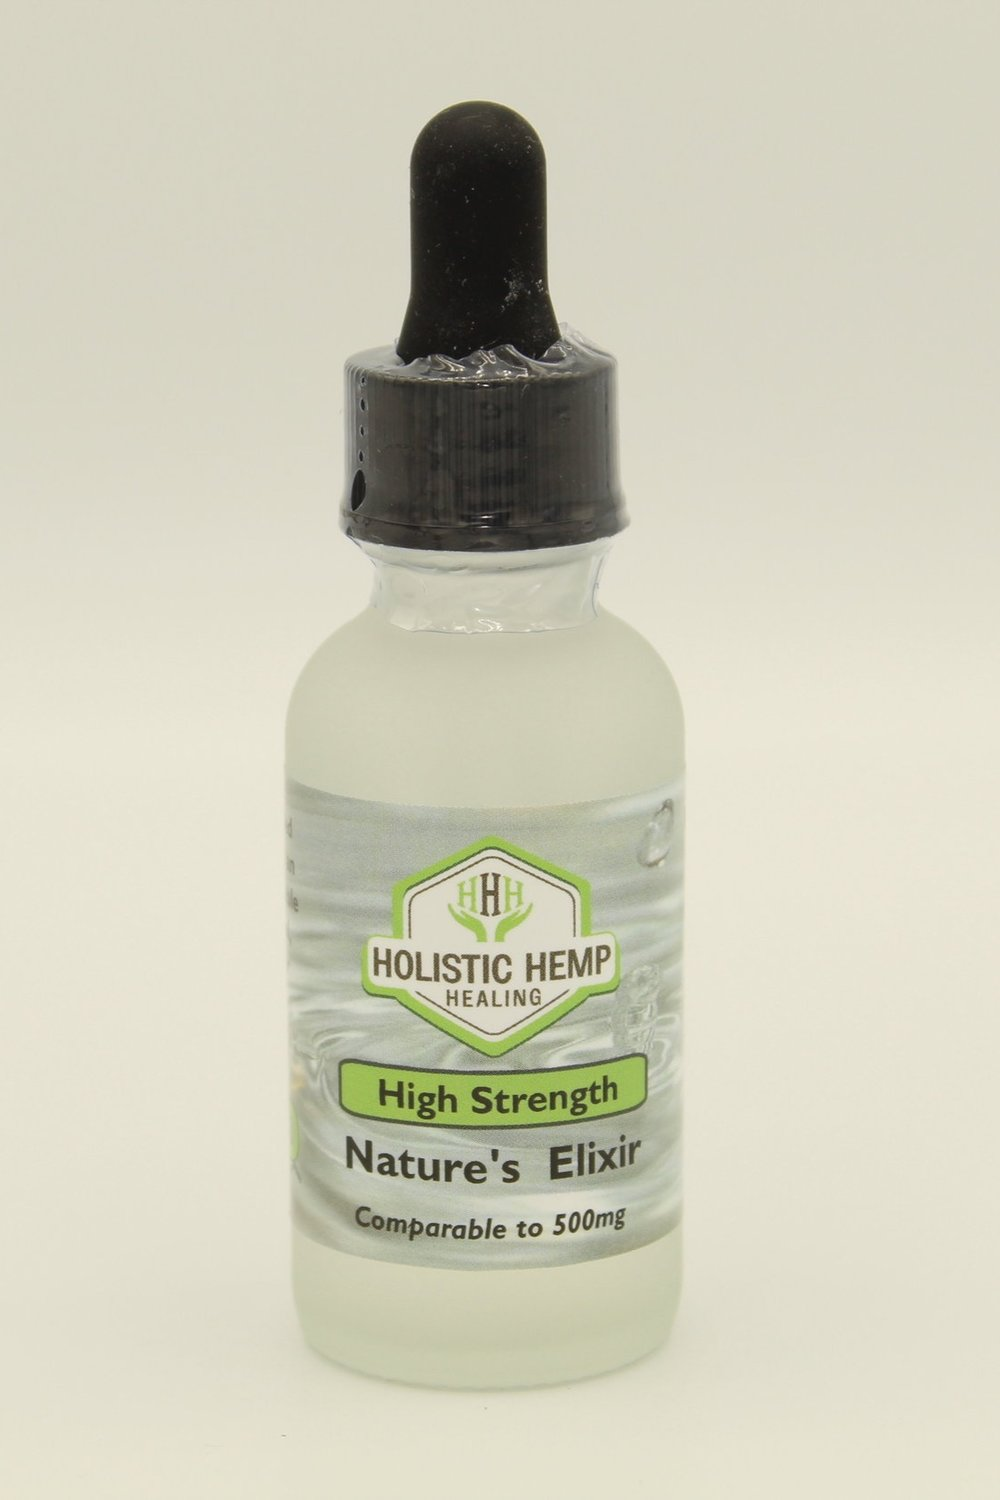 Nature's Elixir High - $70 - 30 mlIn addition to High Strength Pharma Grade Water Soluble CBD derived from industrial hemp, we use natural spring water with an alkaline pH increased 9.1+, which creates an overall tasteless Elixir. This product has a faster absorption rate than an oil and is 100% THC Free.POTENCY: MID-HIGHHigh Strength is ideal for people who find that they're having to take large and/or multiple doses of the Original Strength in order to get effective results. A single serving (1ml) of the High Strength may not appropriate for all, as they may feel that as little as half a dropper is comfortable for them.DIRECTIONSUse the dropper top to pull up the desired amount of liquid and dispense directly into your mouth or a beverage of choice.